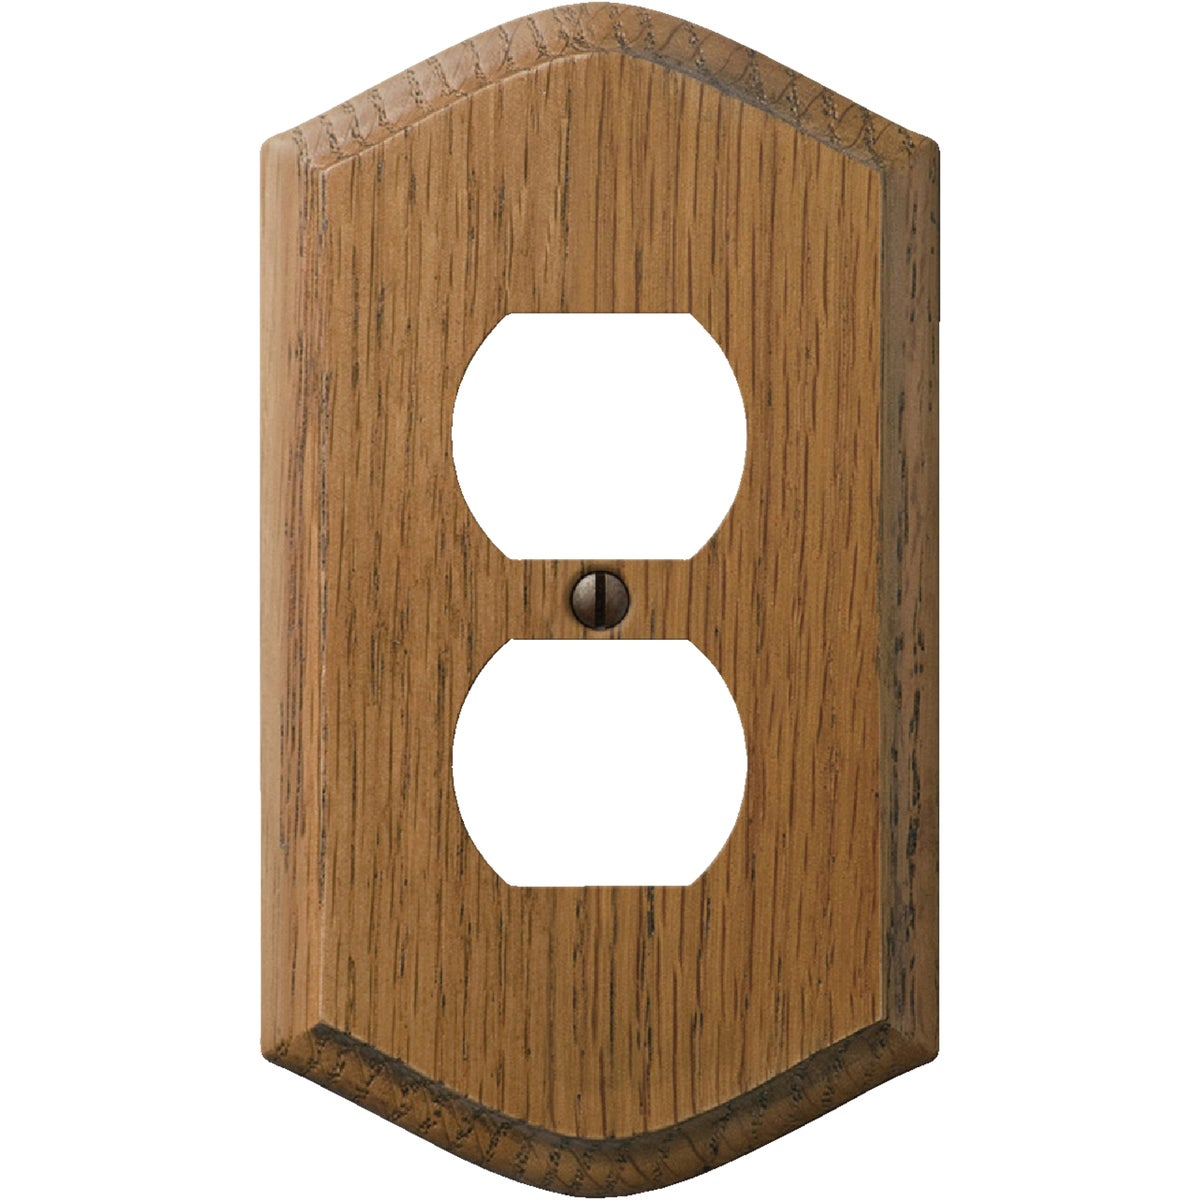 OAK OUTLET WALL PLATE - 708 by Jackson Deerfield Mf